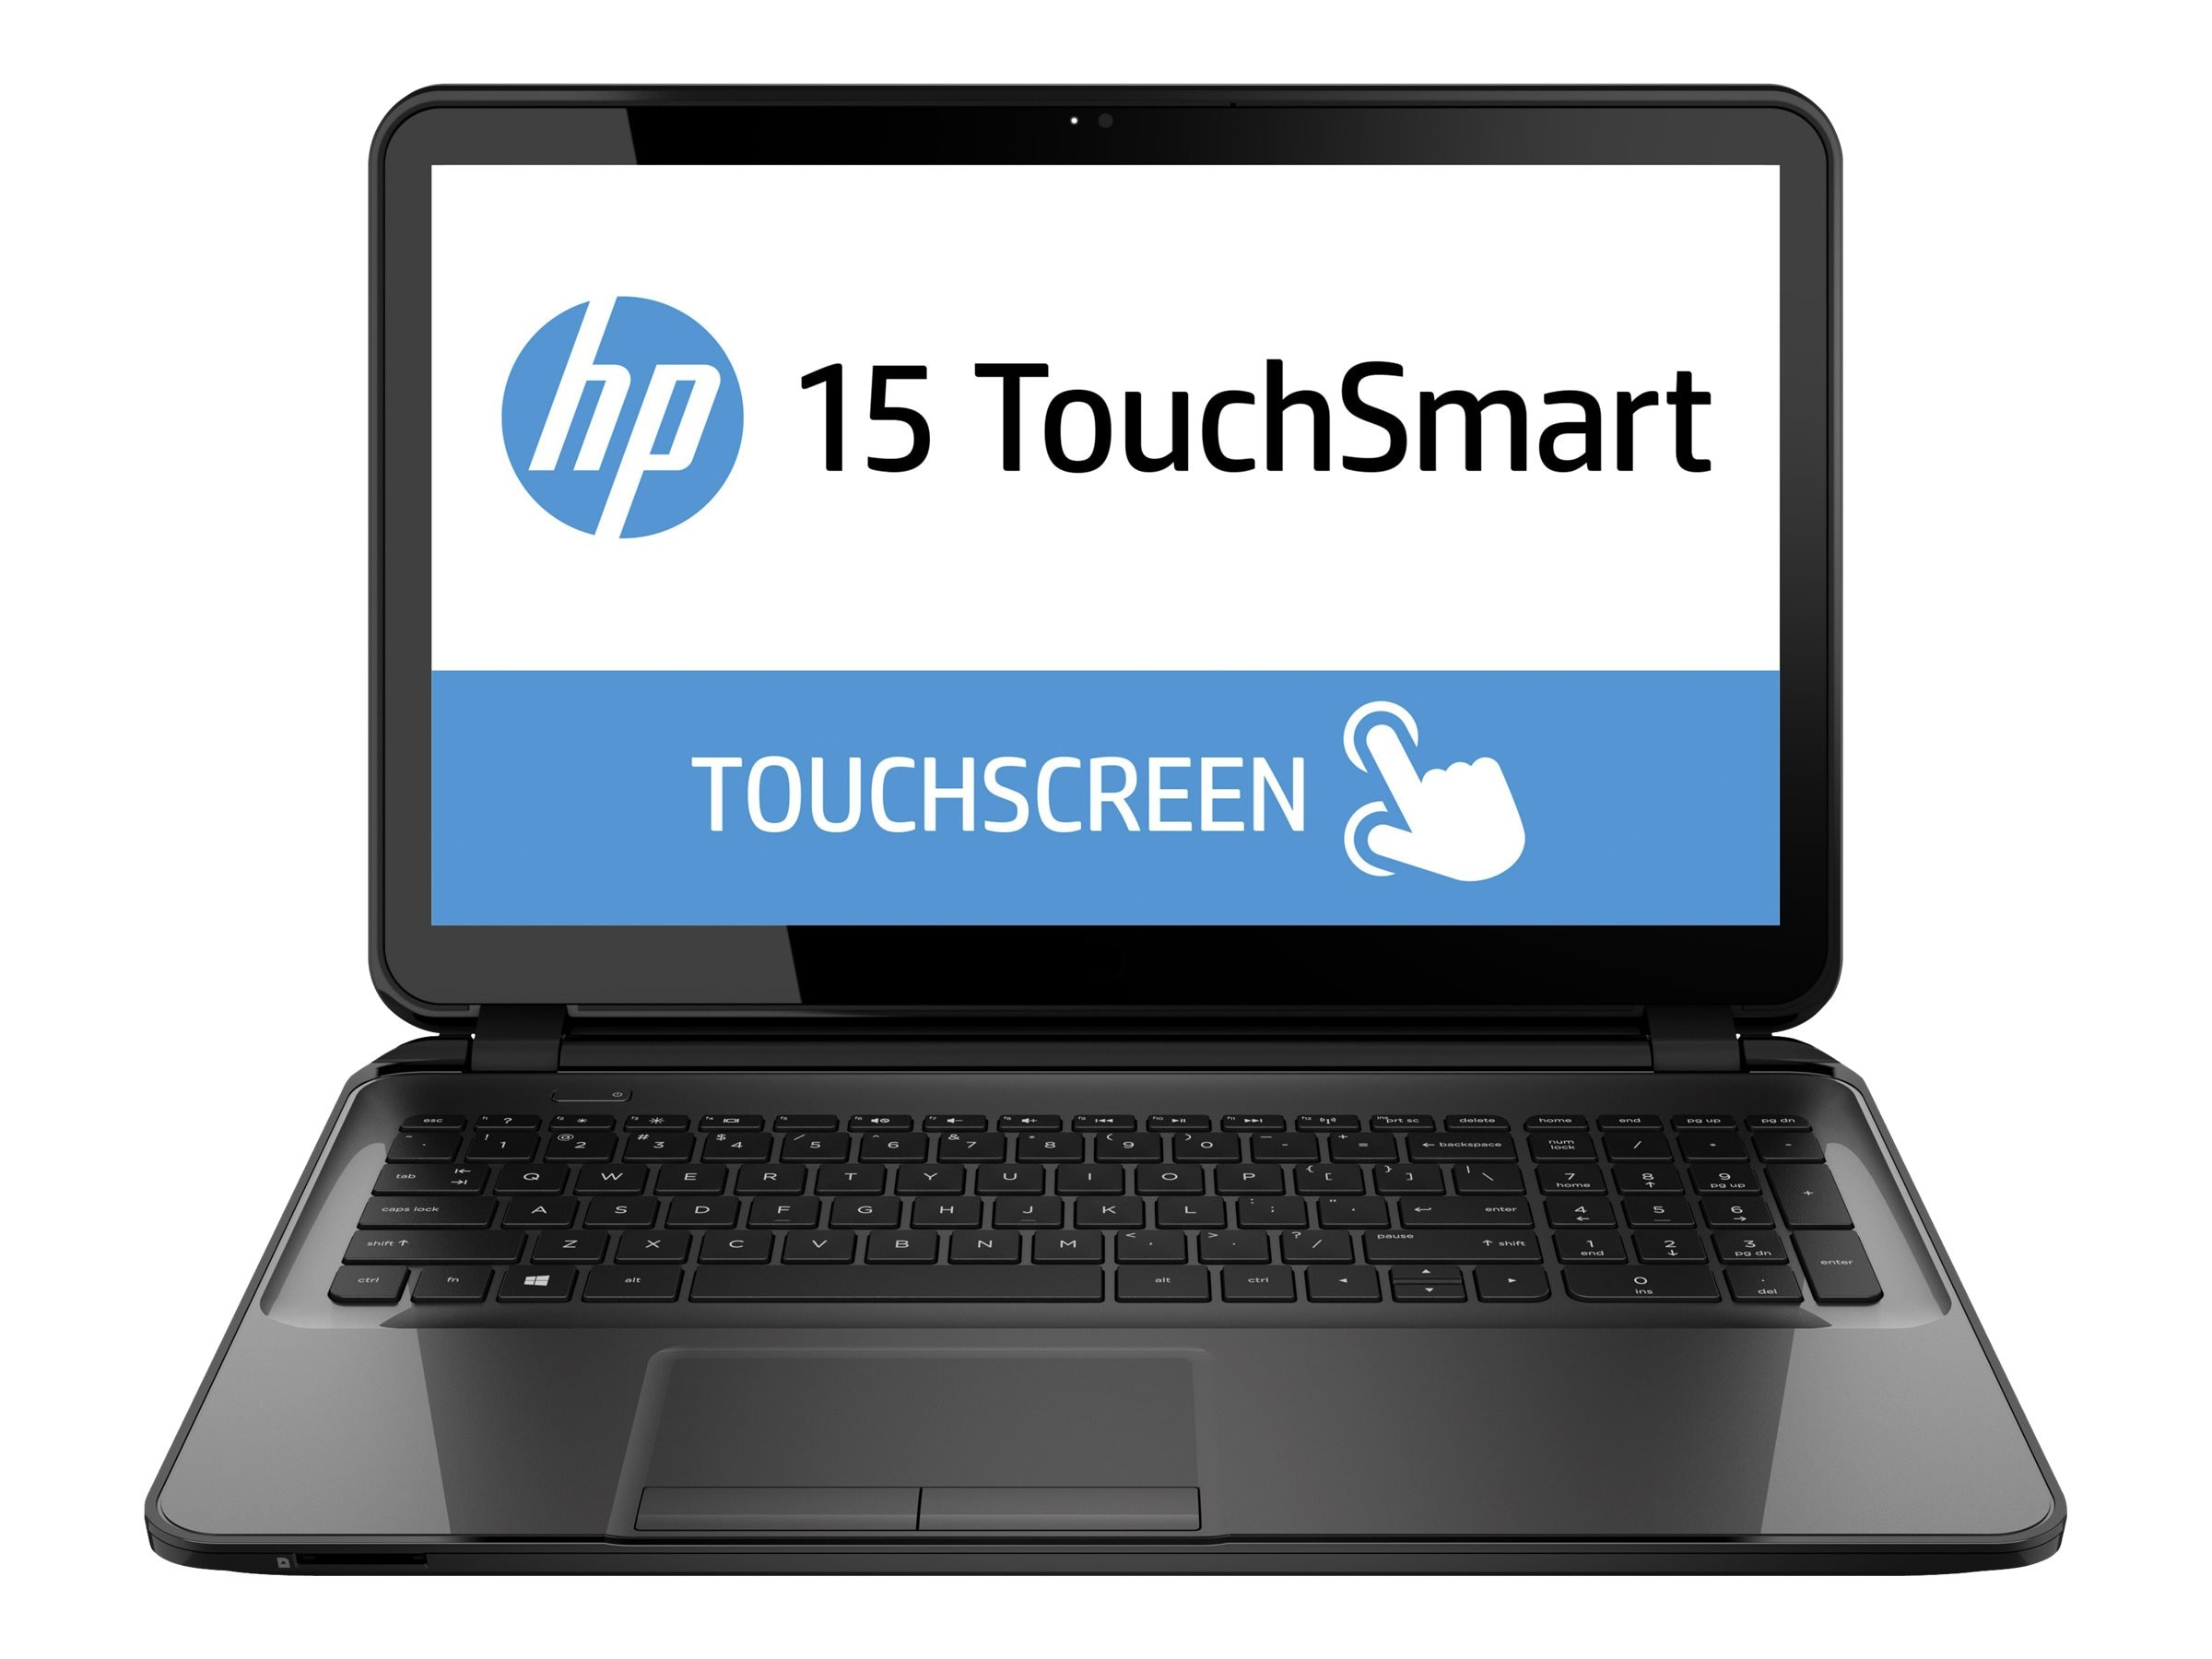 HP Envy TouchSmart 15-D095nr : 1.5GHz A4-Series 15.6in display